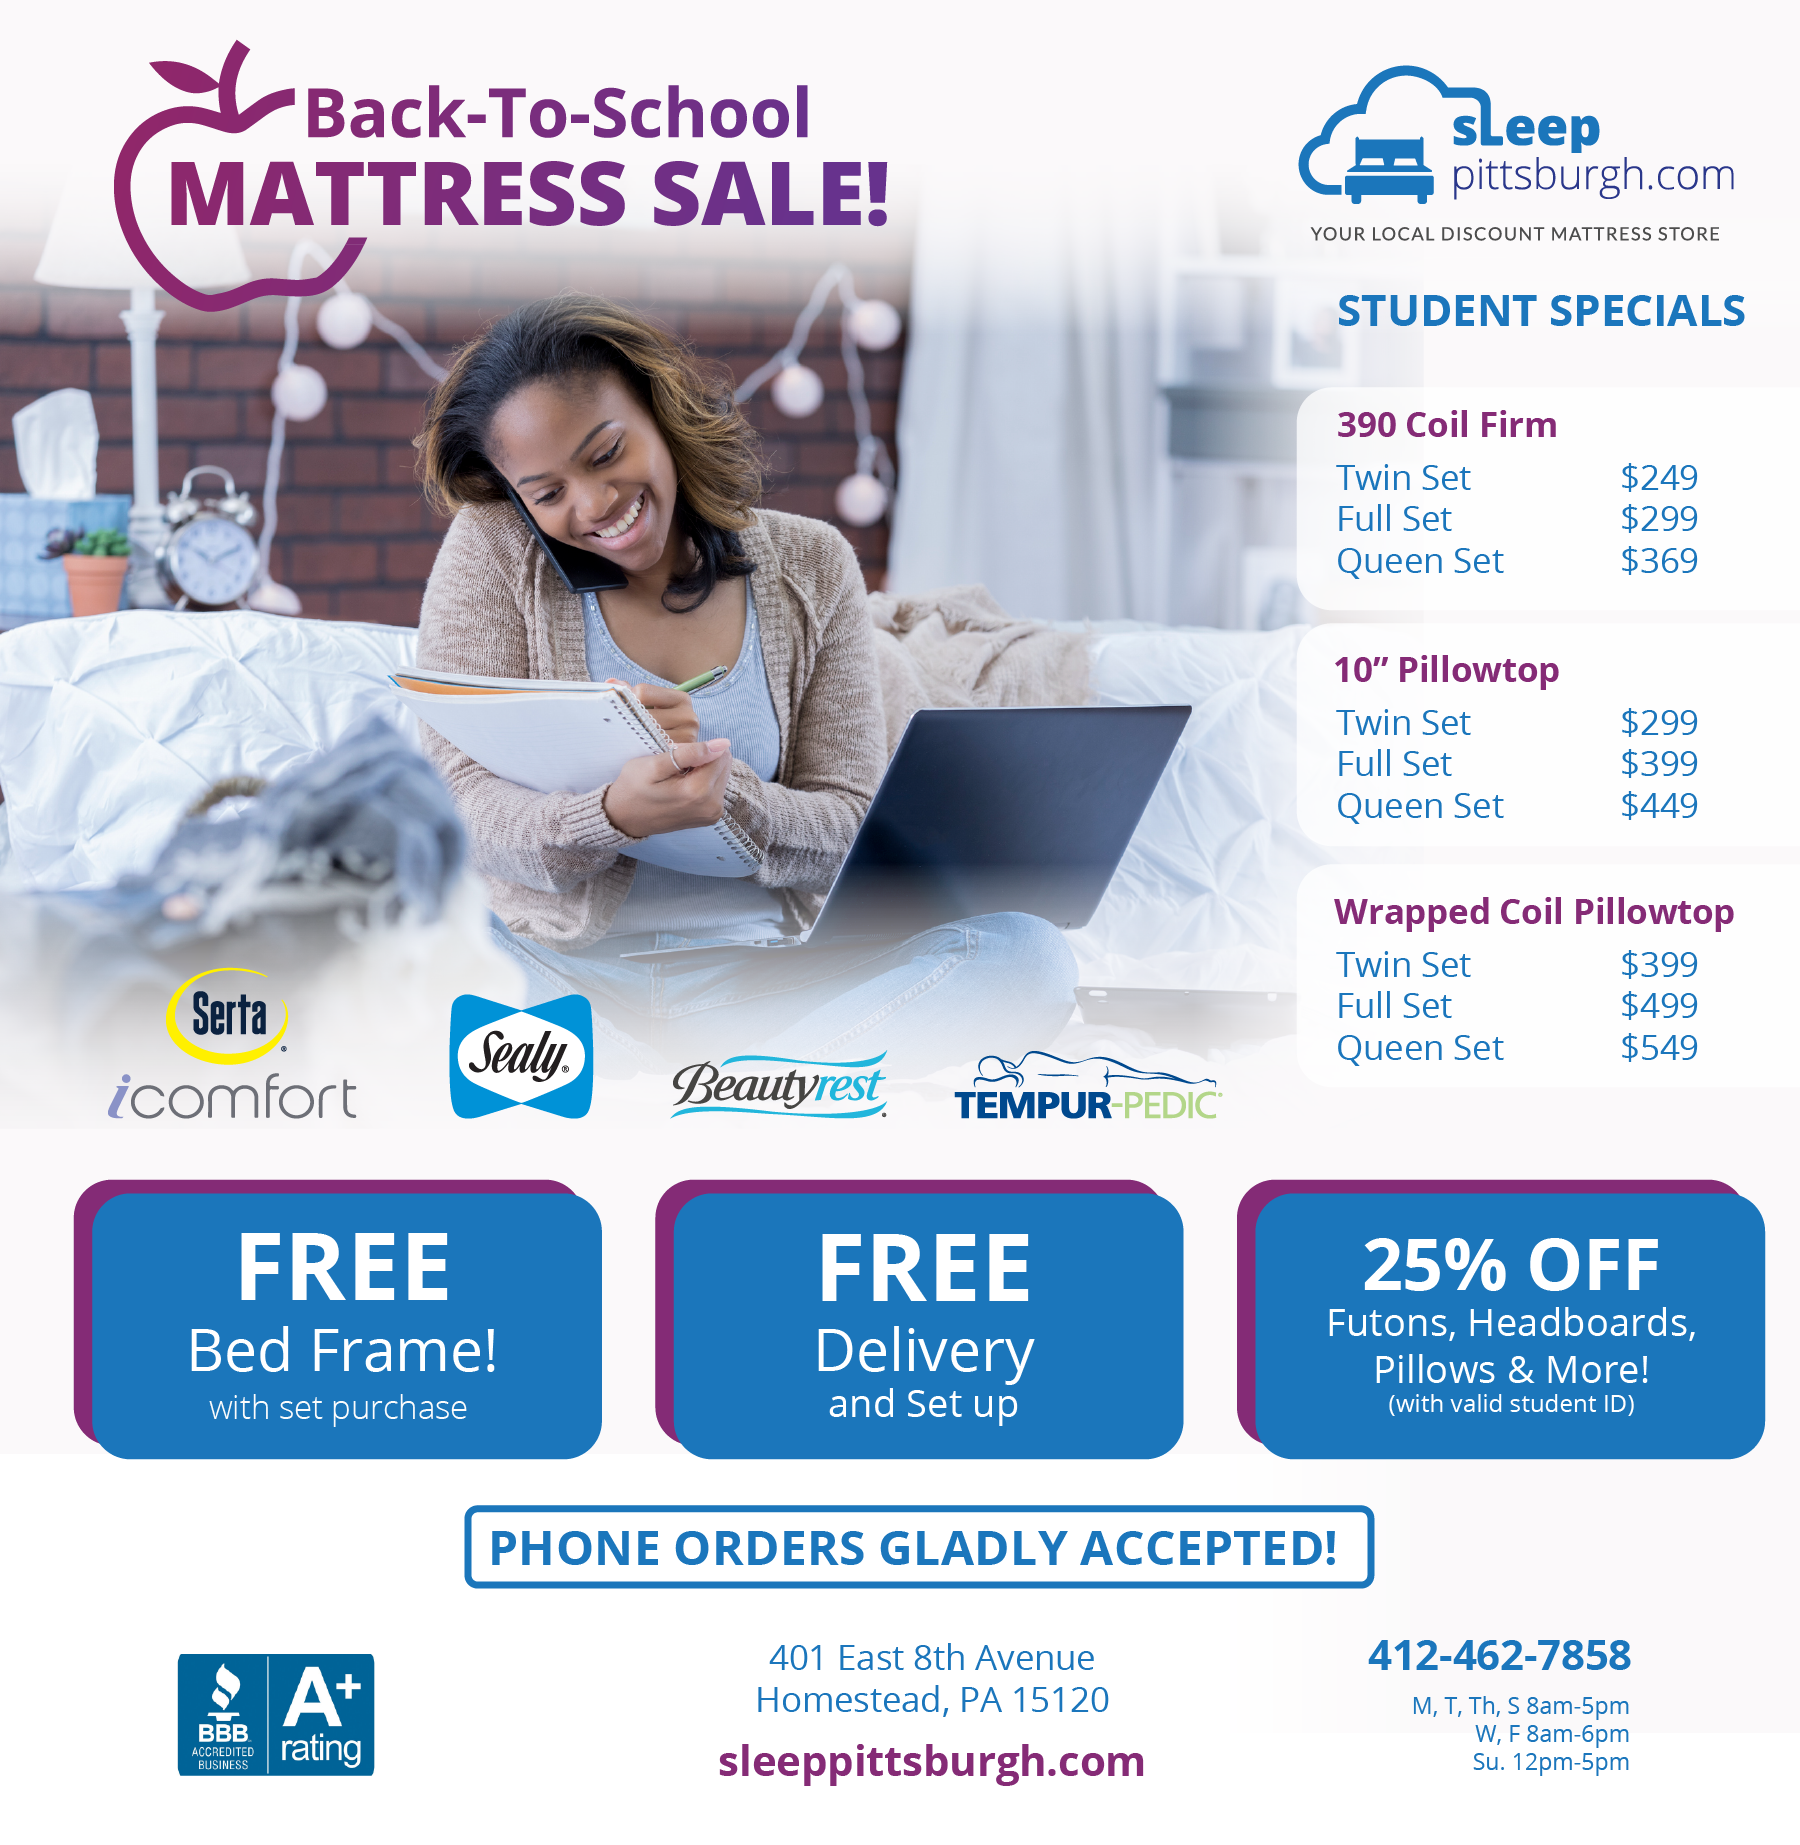 Back to School Mattress Sale